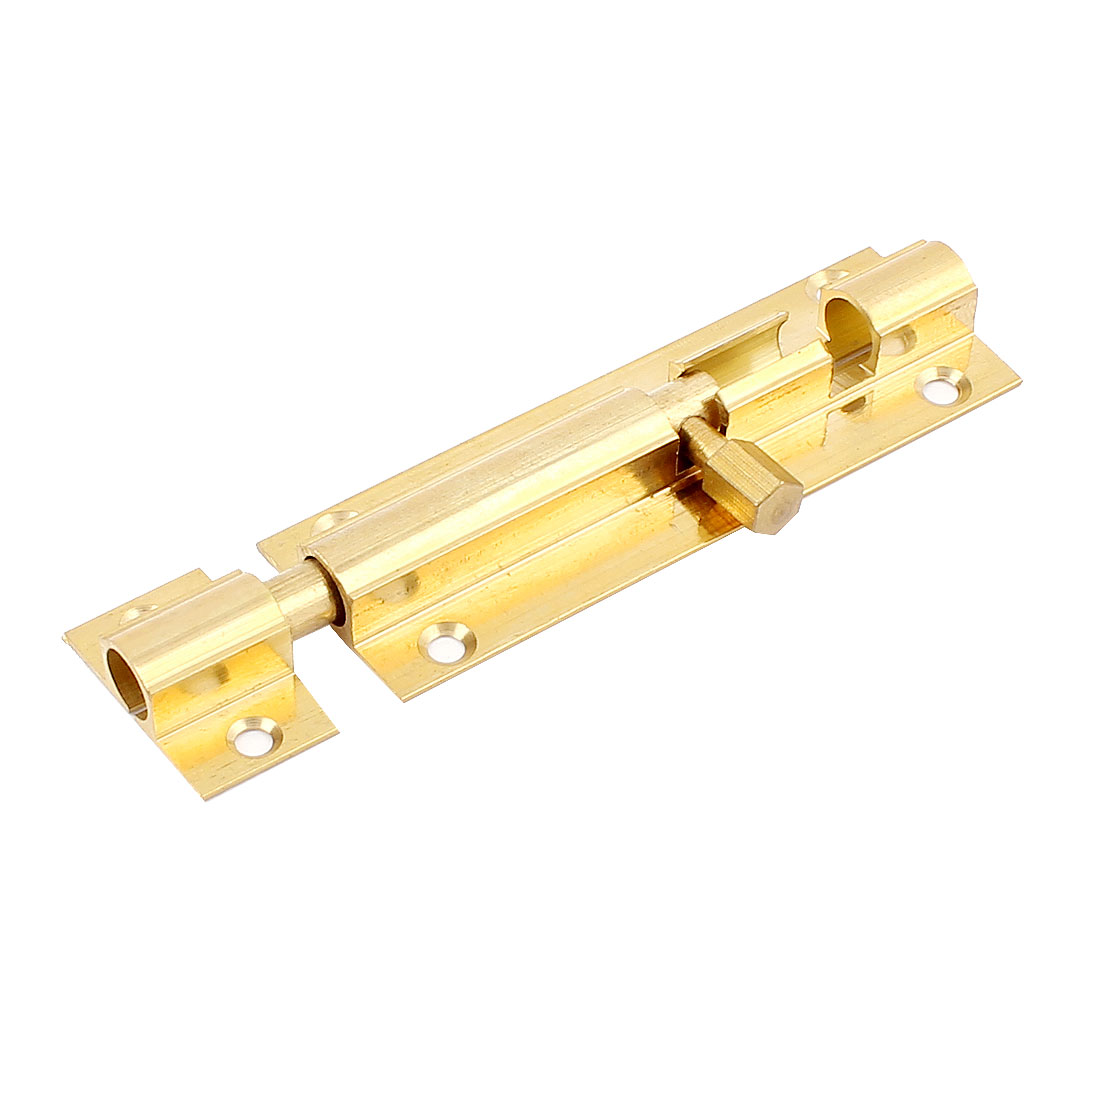 "3"" Long Brass Door Security Latch Sliding Lock Barrel Bolt Gold Tone"